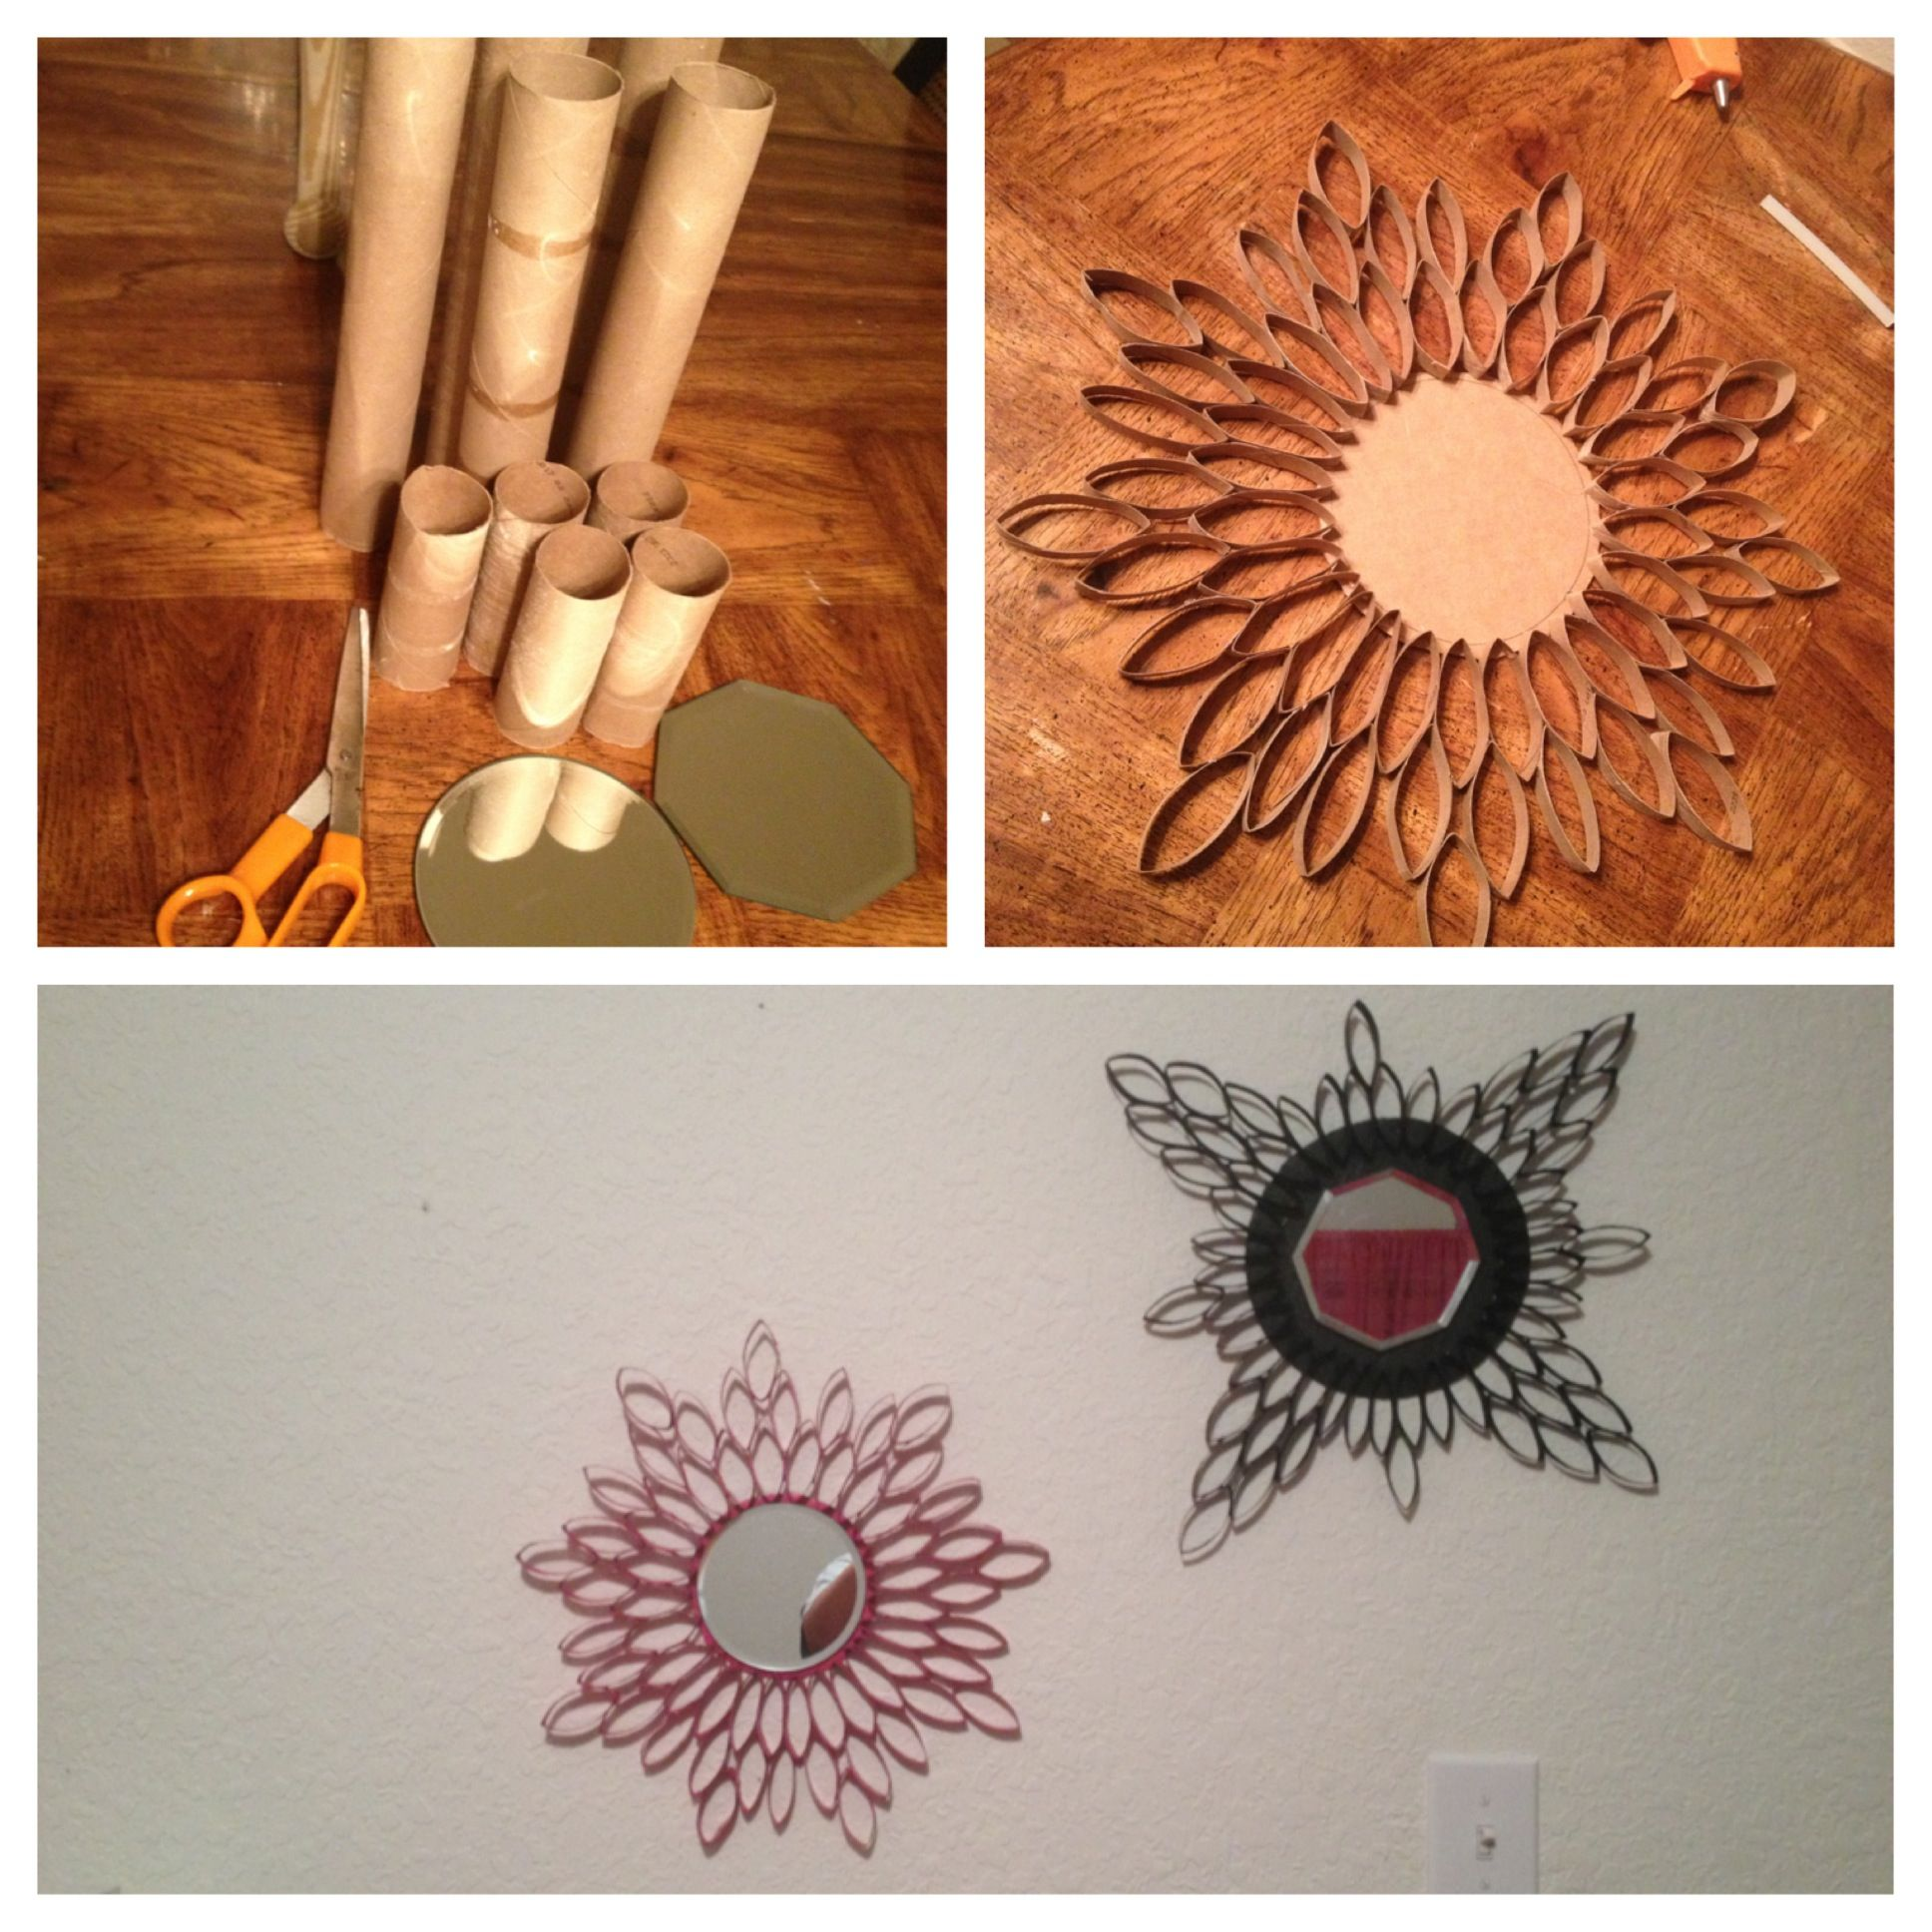 Toilet paper roll crafts art projects pinterest for Toilet paper art ideas